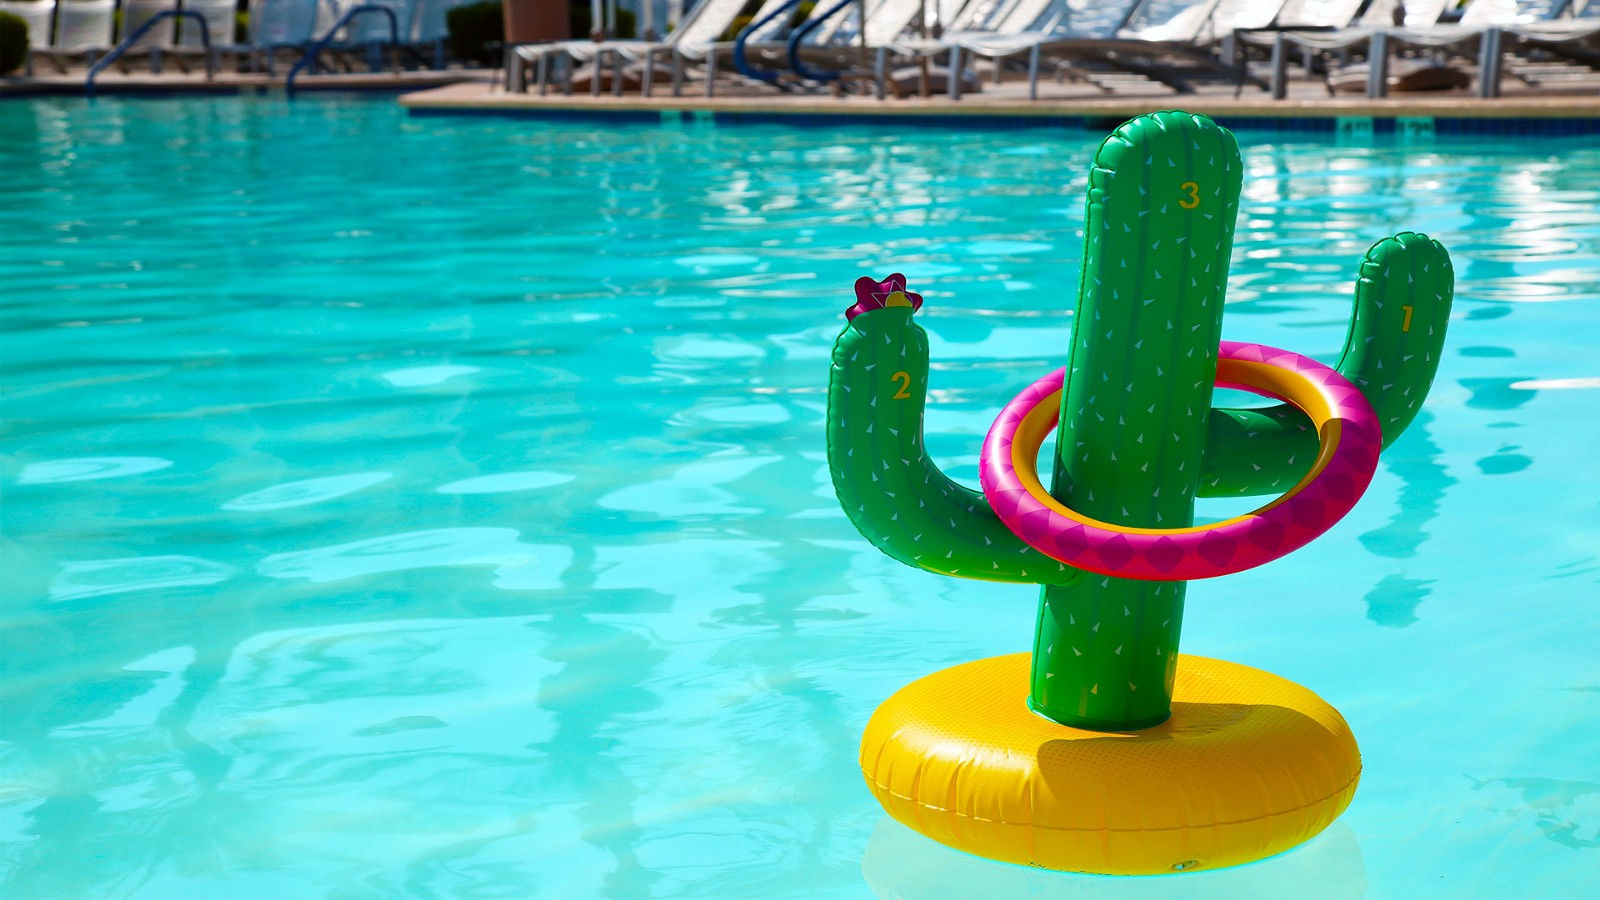 CRAZY POOL PARTY GAMES TO TRY THIS SUMMER! – Partyvapours – Medium